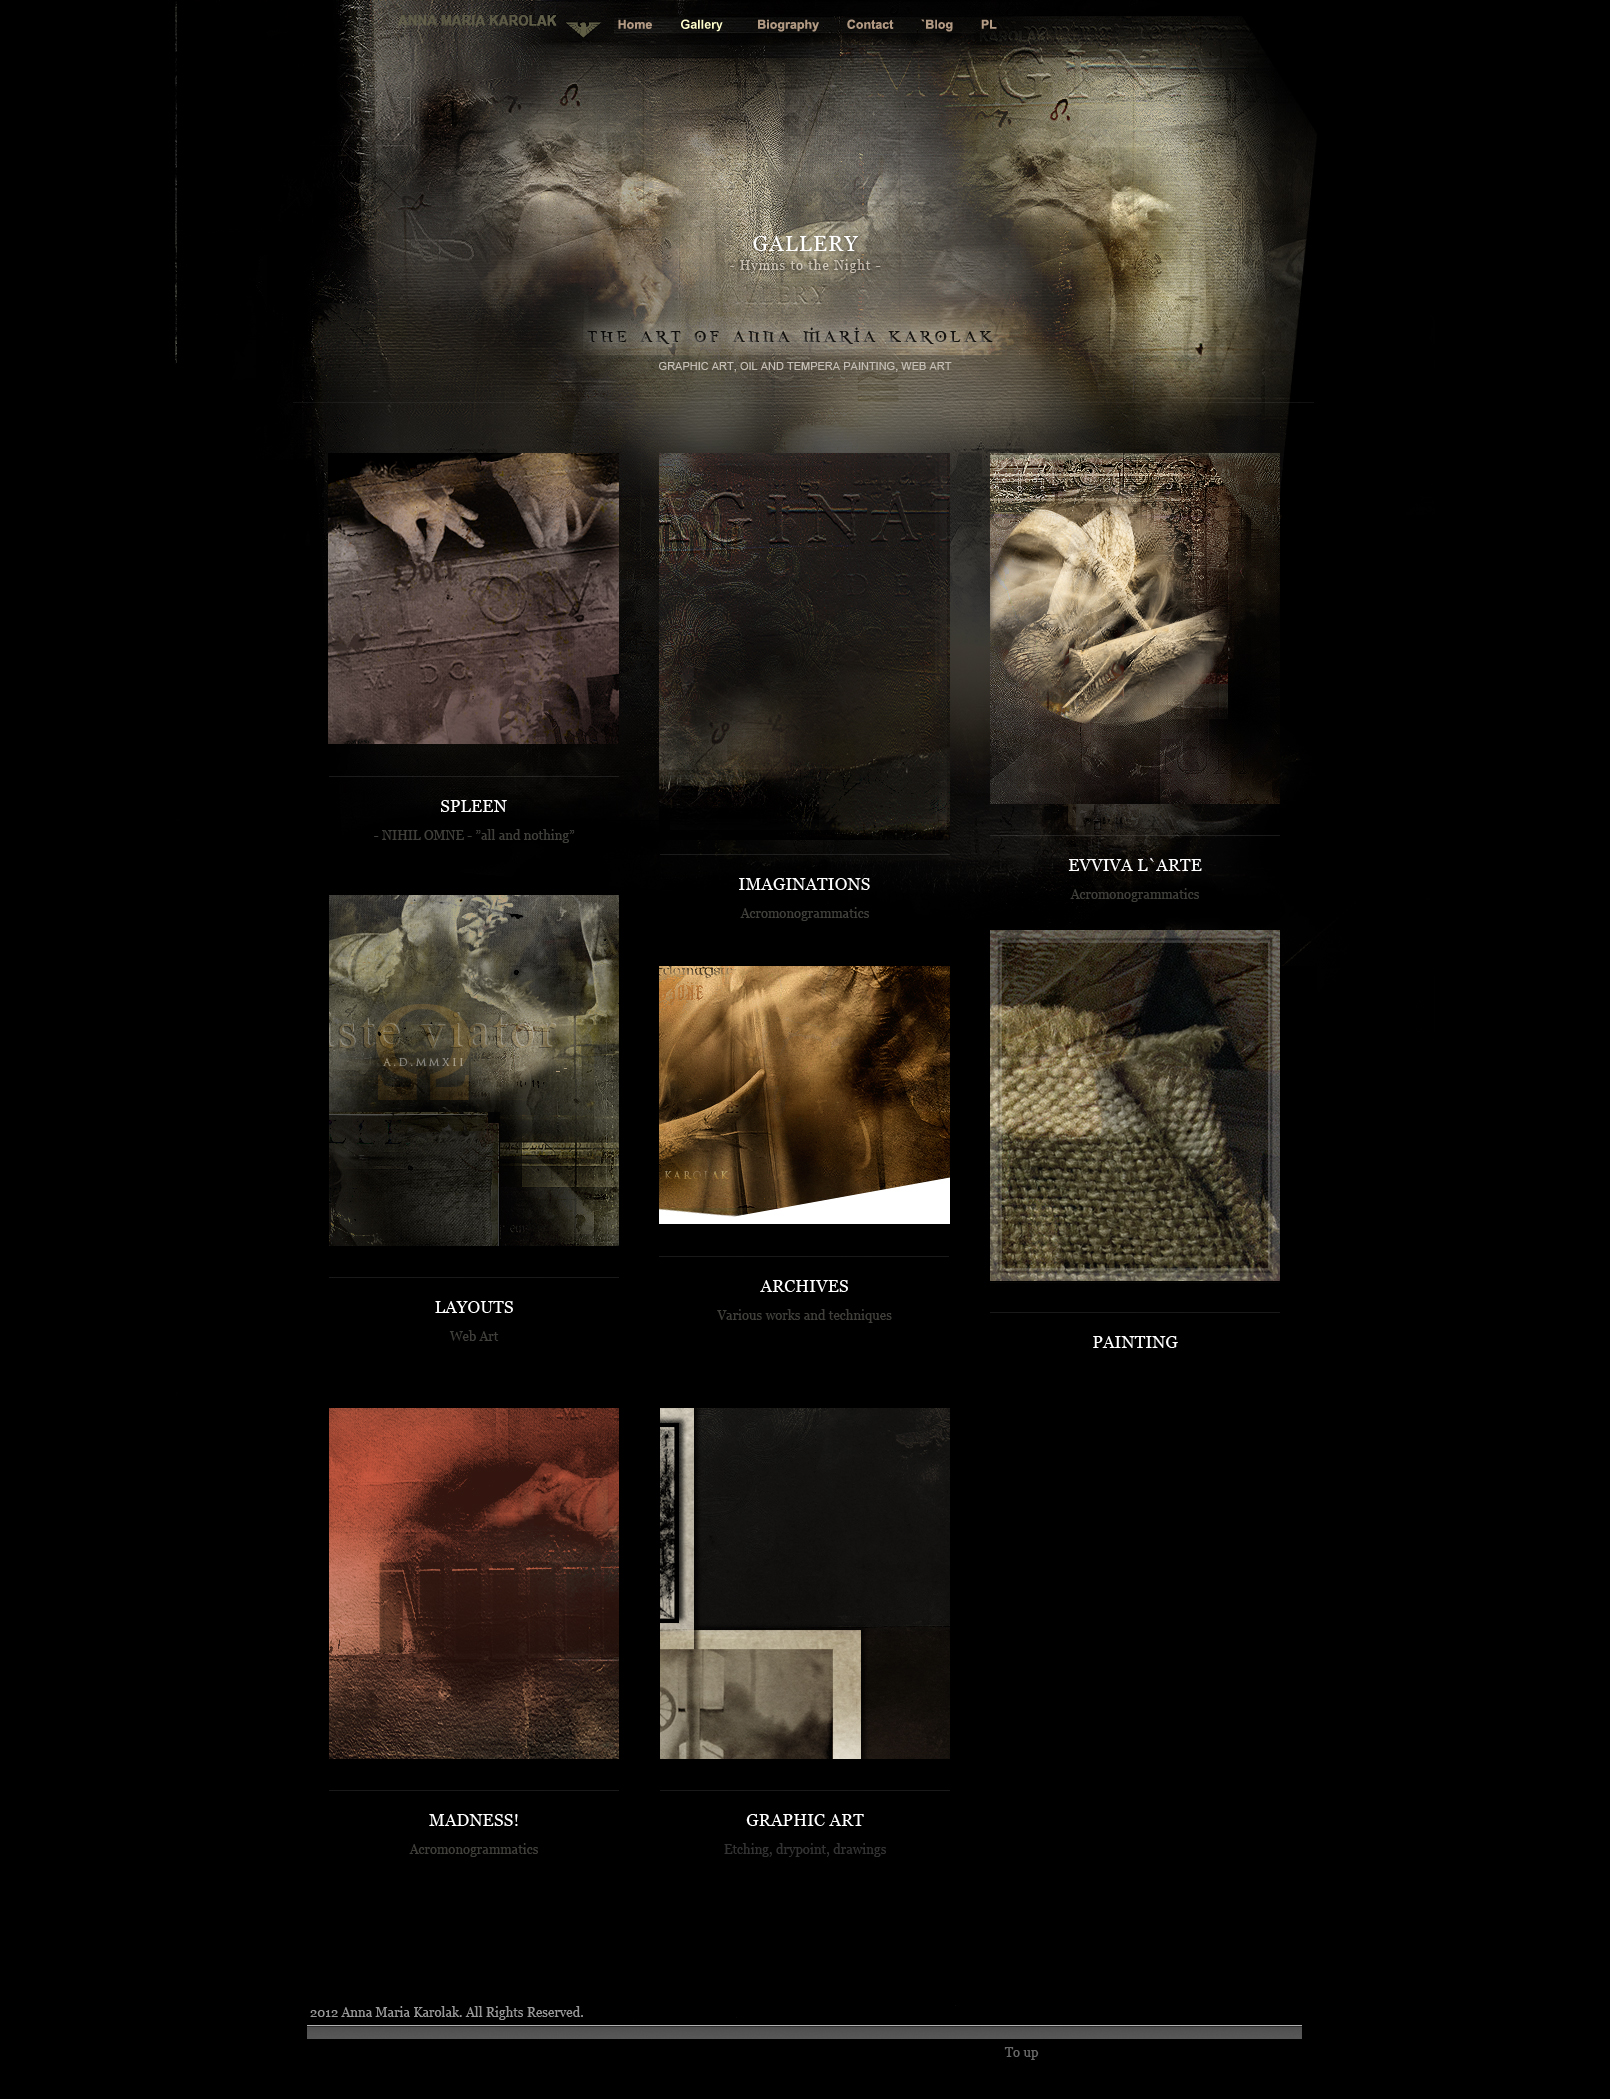 """Artist Web Design Example: the final project of the layout for my """"Gallery"""" page in this website in 2012. Artistic Web Design, Building an Website for Artist."""